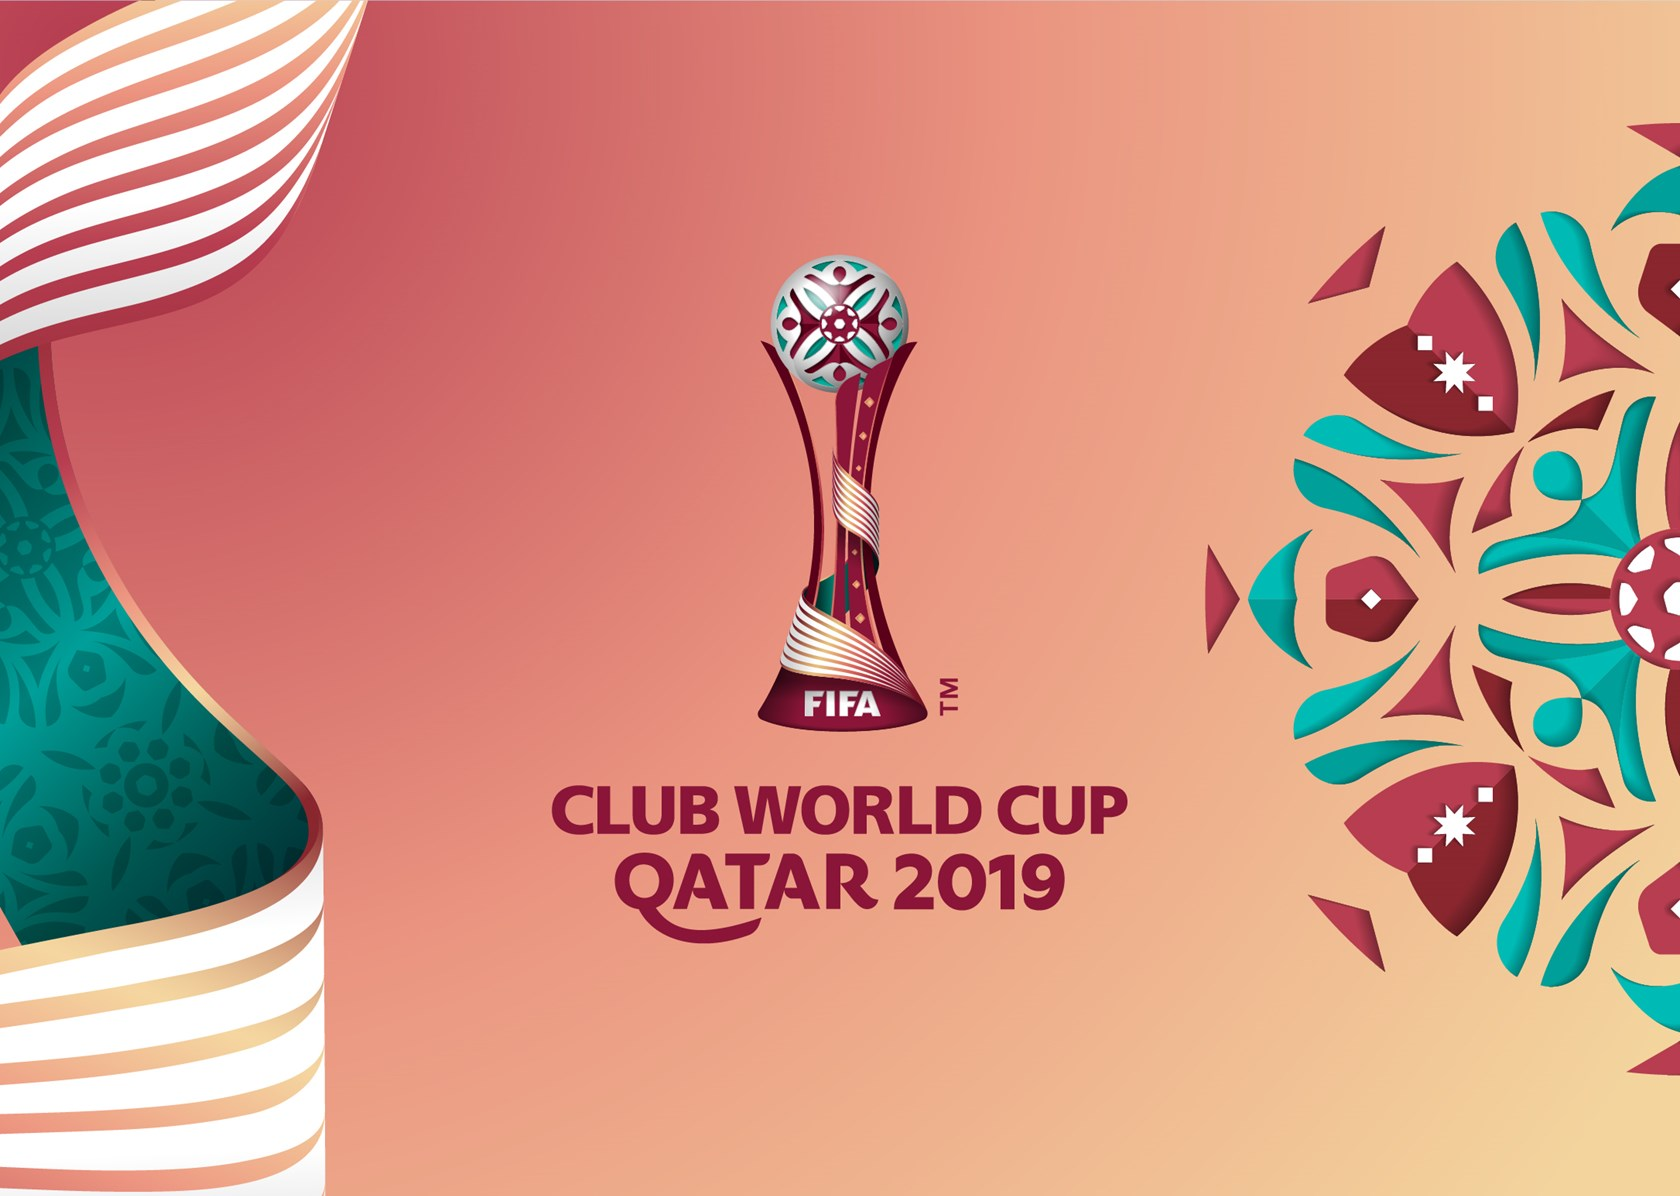 FIFA Club World Cup Qatar 2019™ — The new pearl of club football